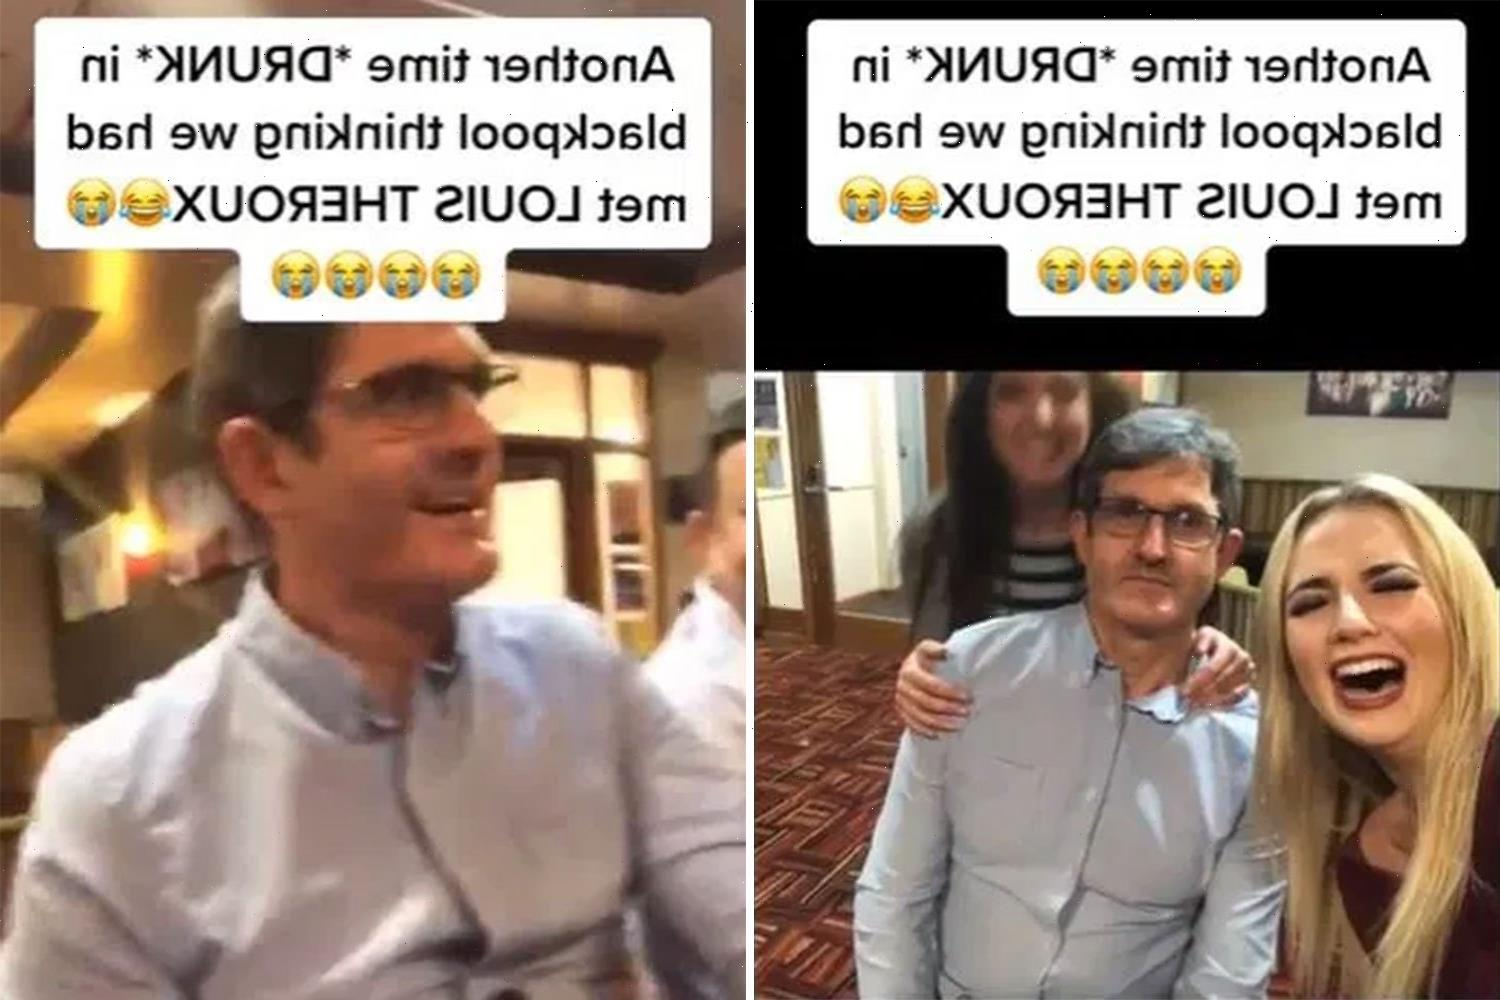 Woman mortified after finding snap with 'Louis Theroux' from a night out & realising her awkward blunder